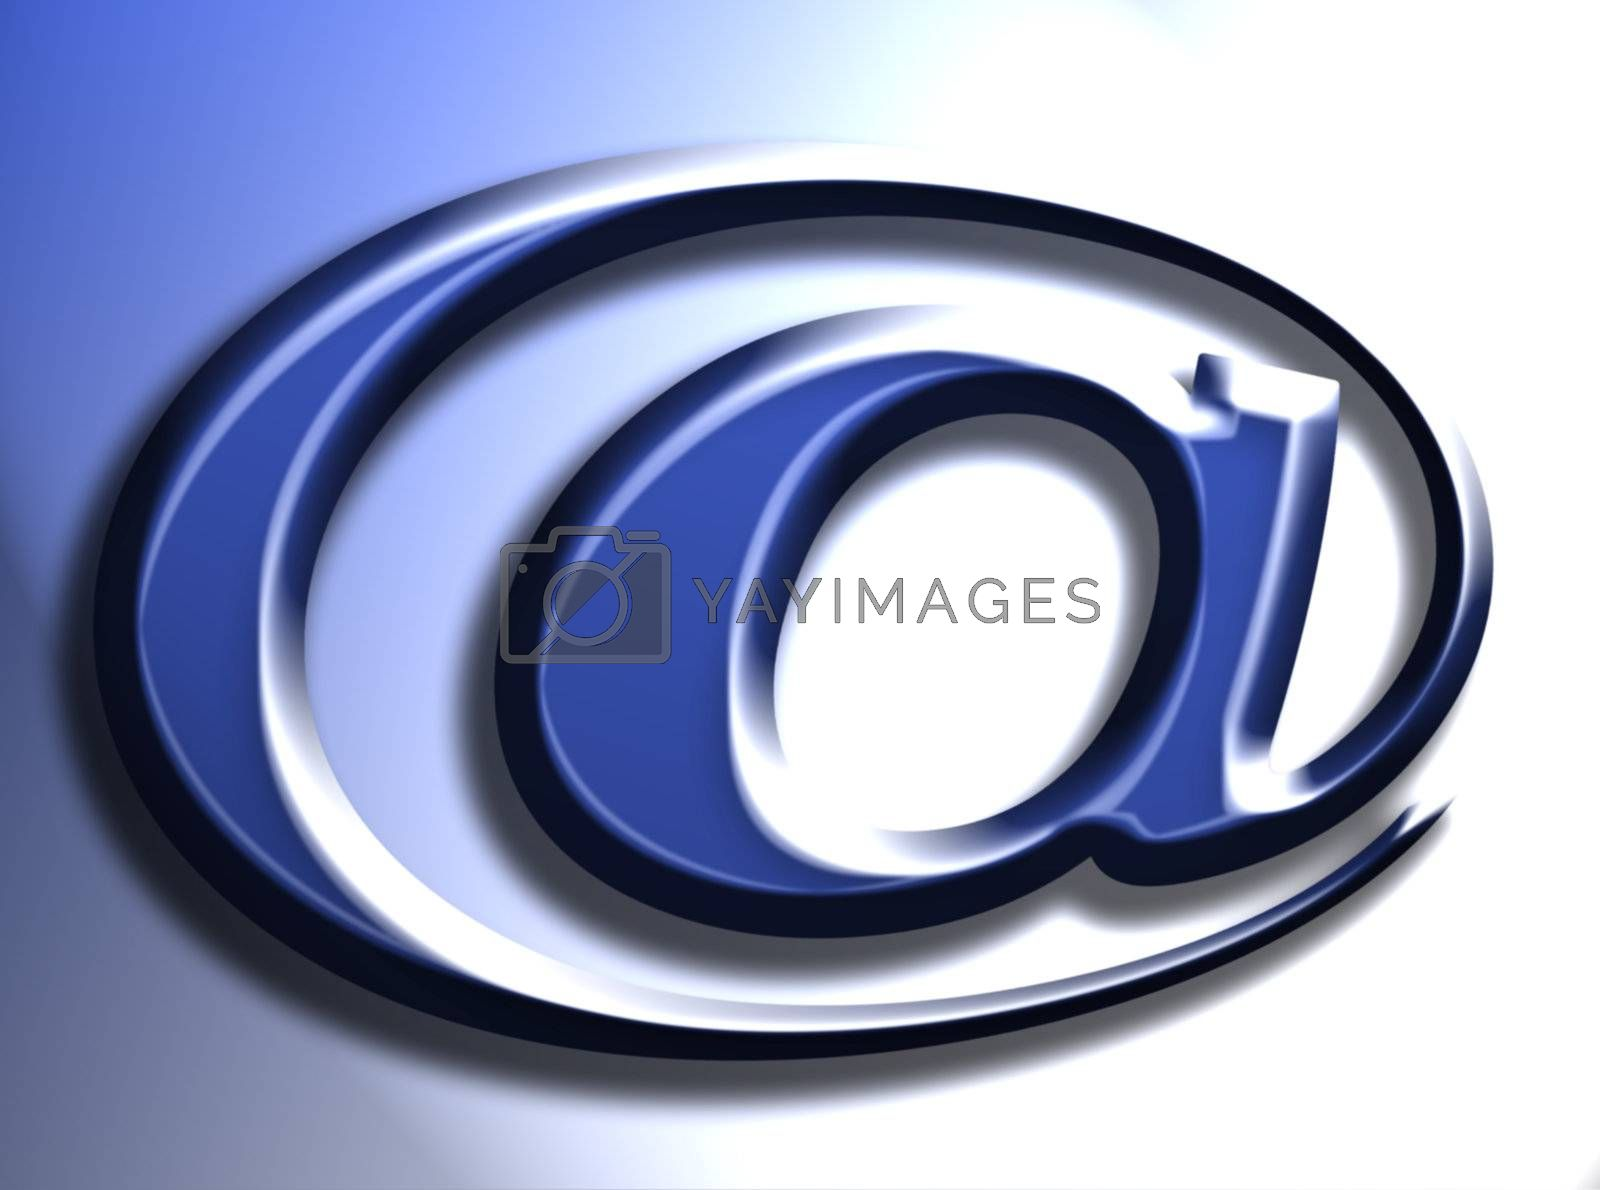 email representation on blue background, computer generated image